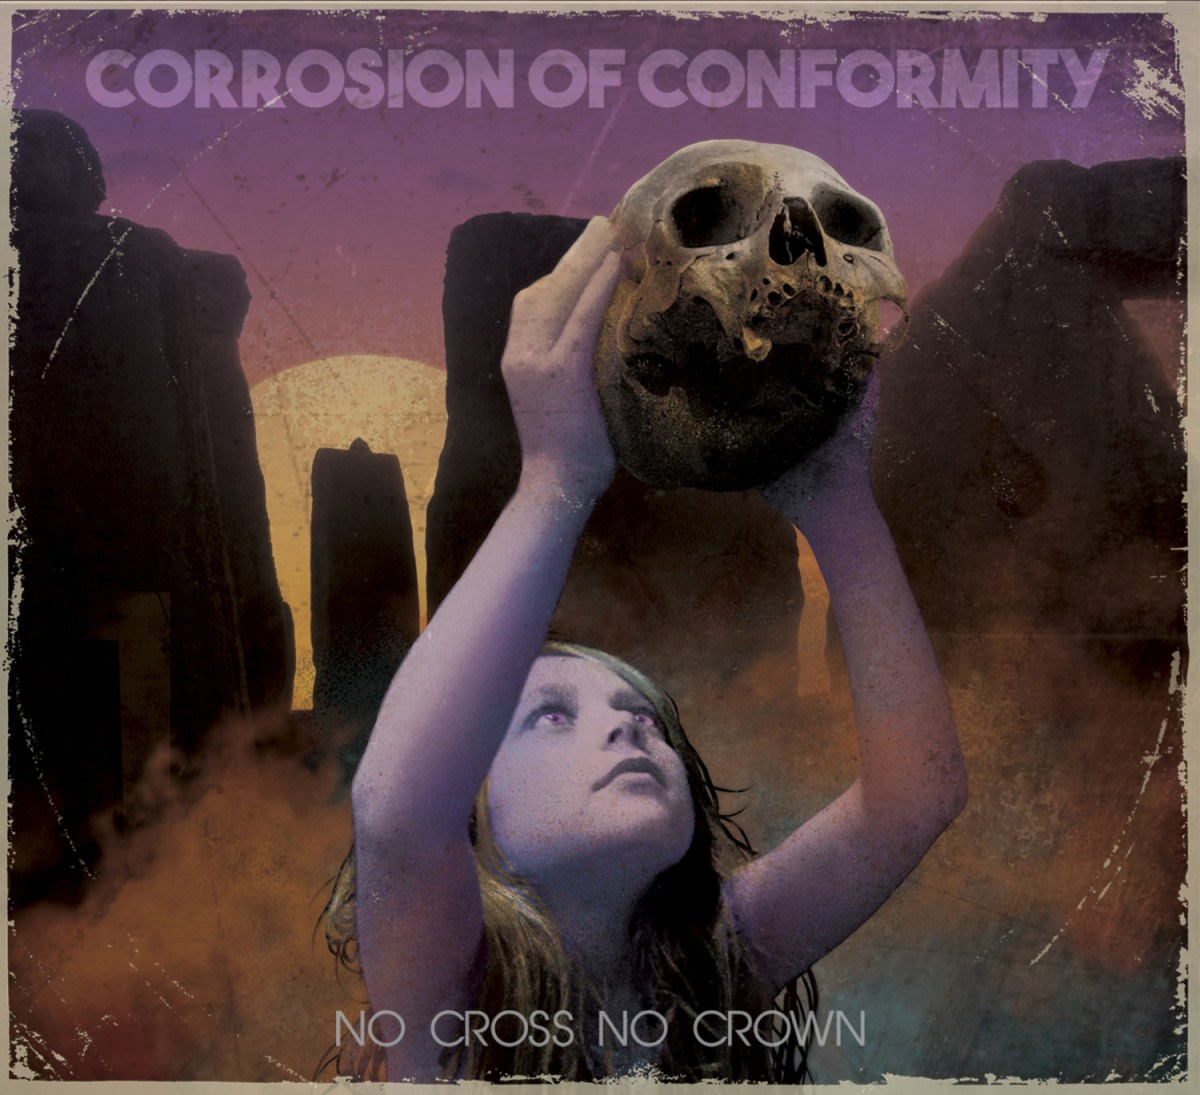 On Tour Now! CORROSION OF CONFORMITY